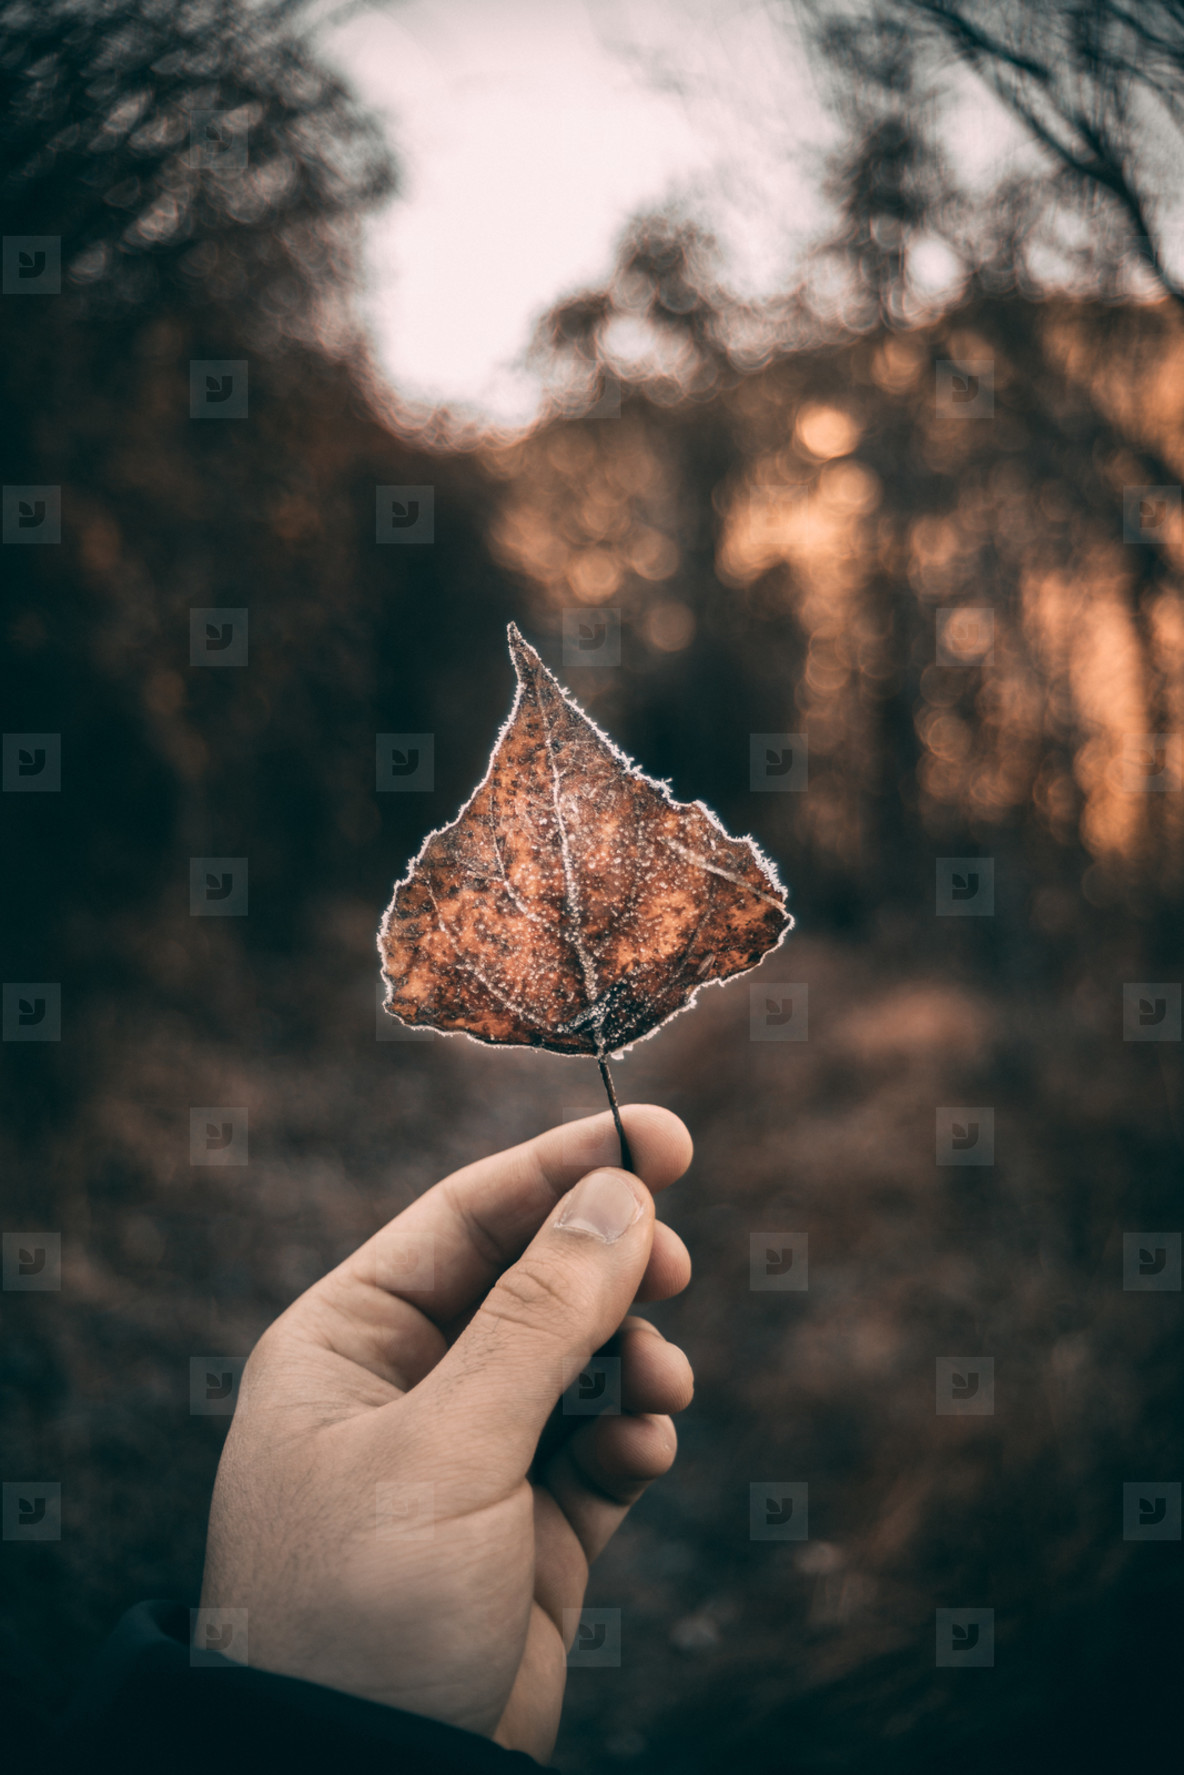 Leaf in a forest